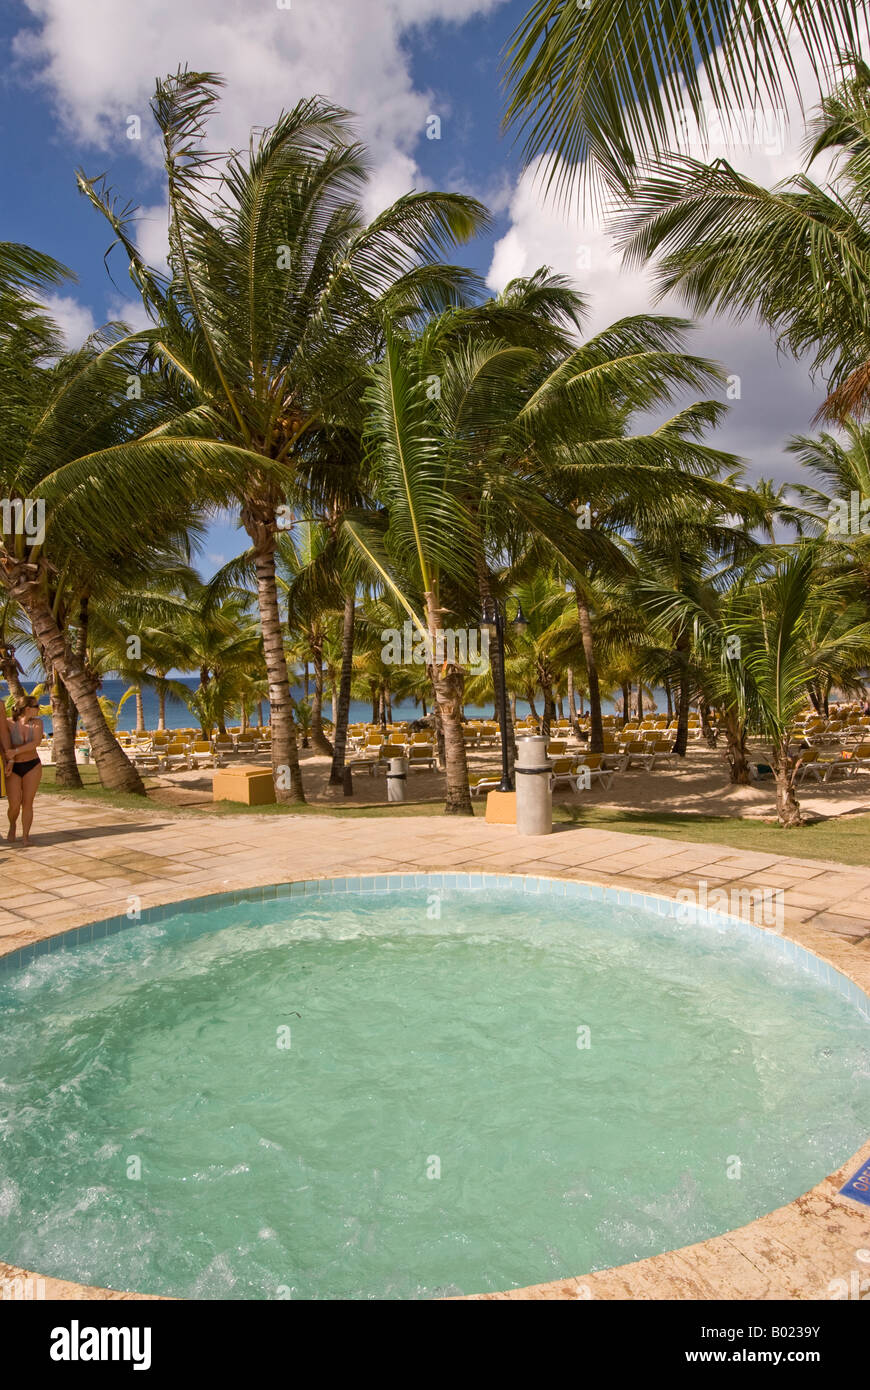 Dominican republic bayahibe small round swimming pool palm trees stock photo royalty free image - Palm beach swimming pool ...